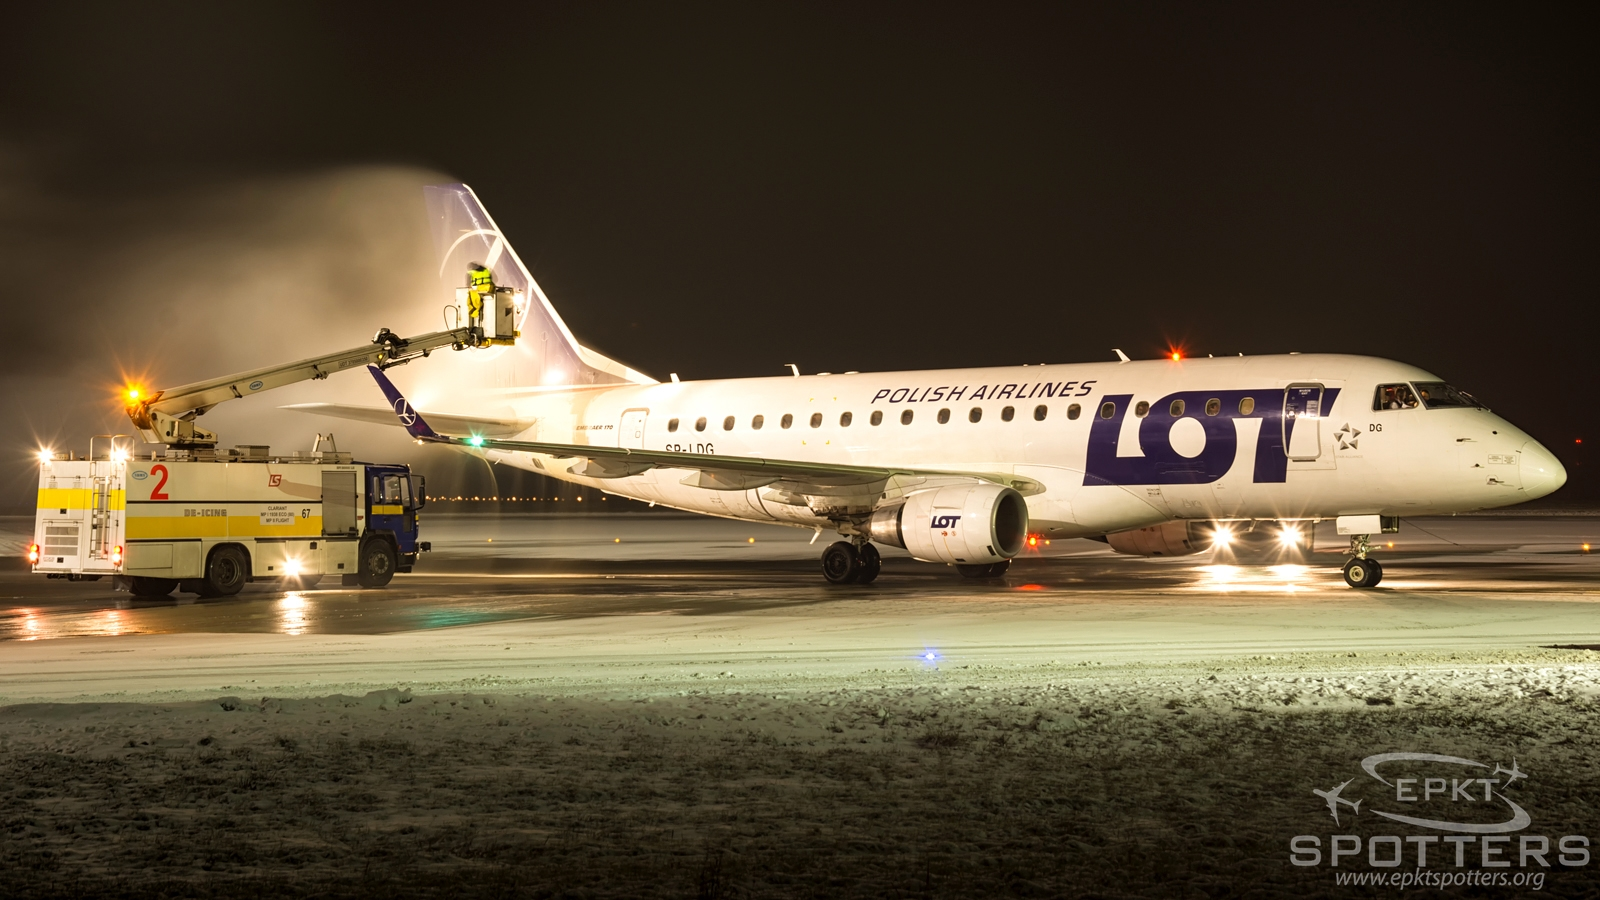 SP-LDG - Embraer 170 -100ST (LOT Polish Airlines) / Pyrzowice - Katowice Poland [EPKT/KTW]